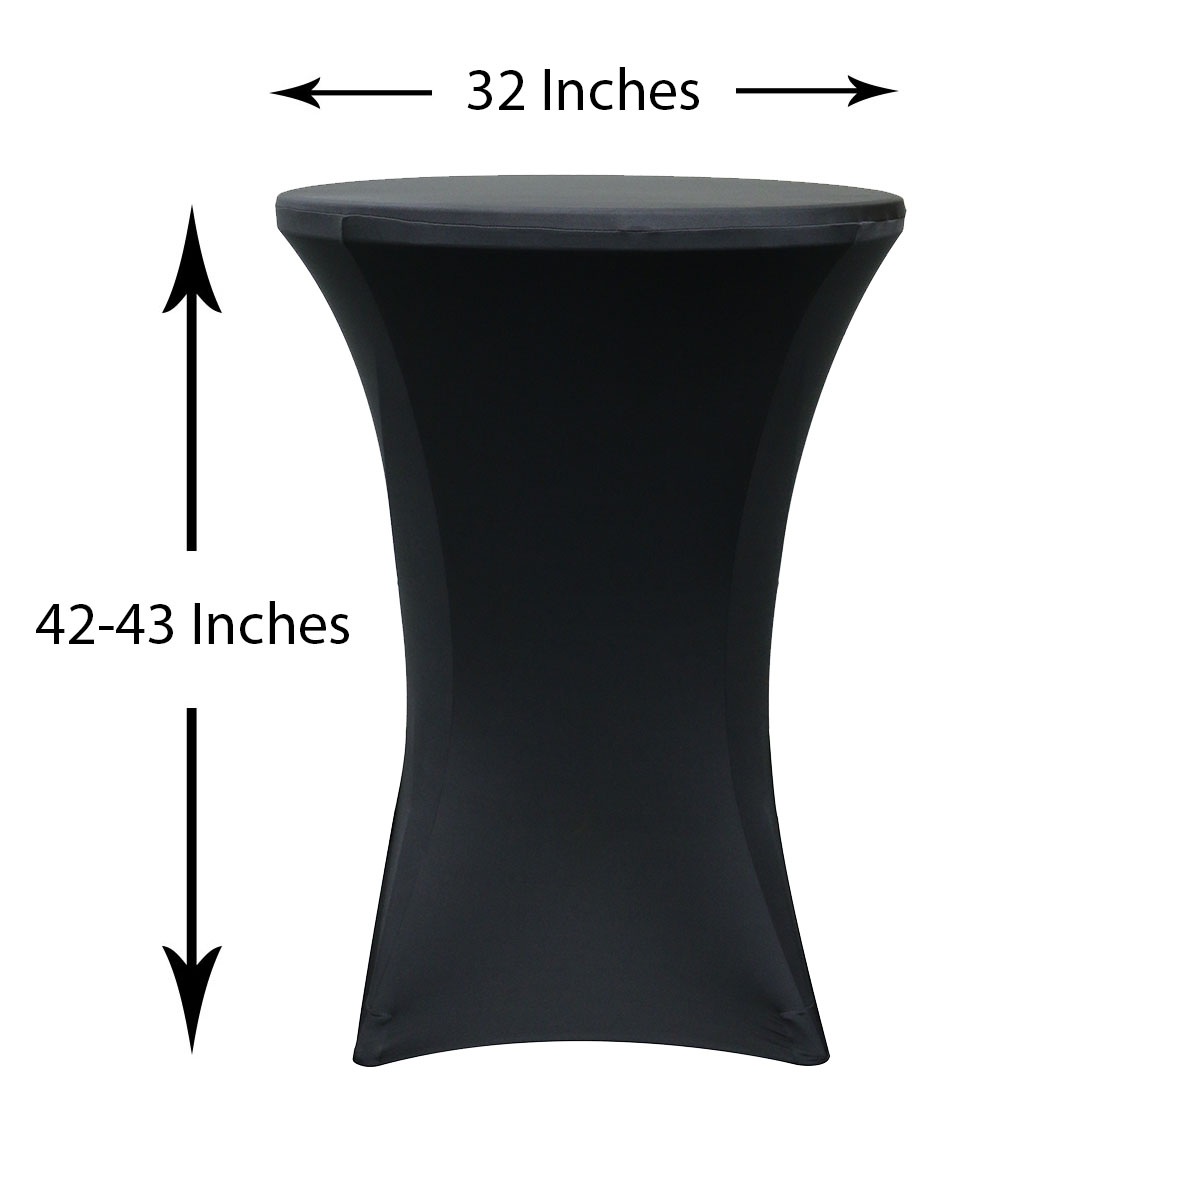 32-inch-highboy-cocktail-spandex-table-covers-black-dimensions.jpg